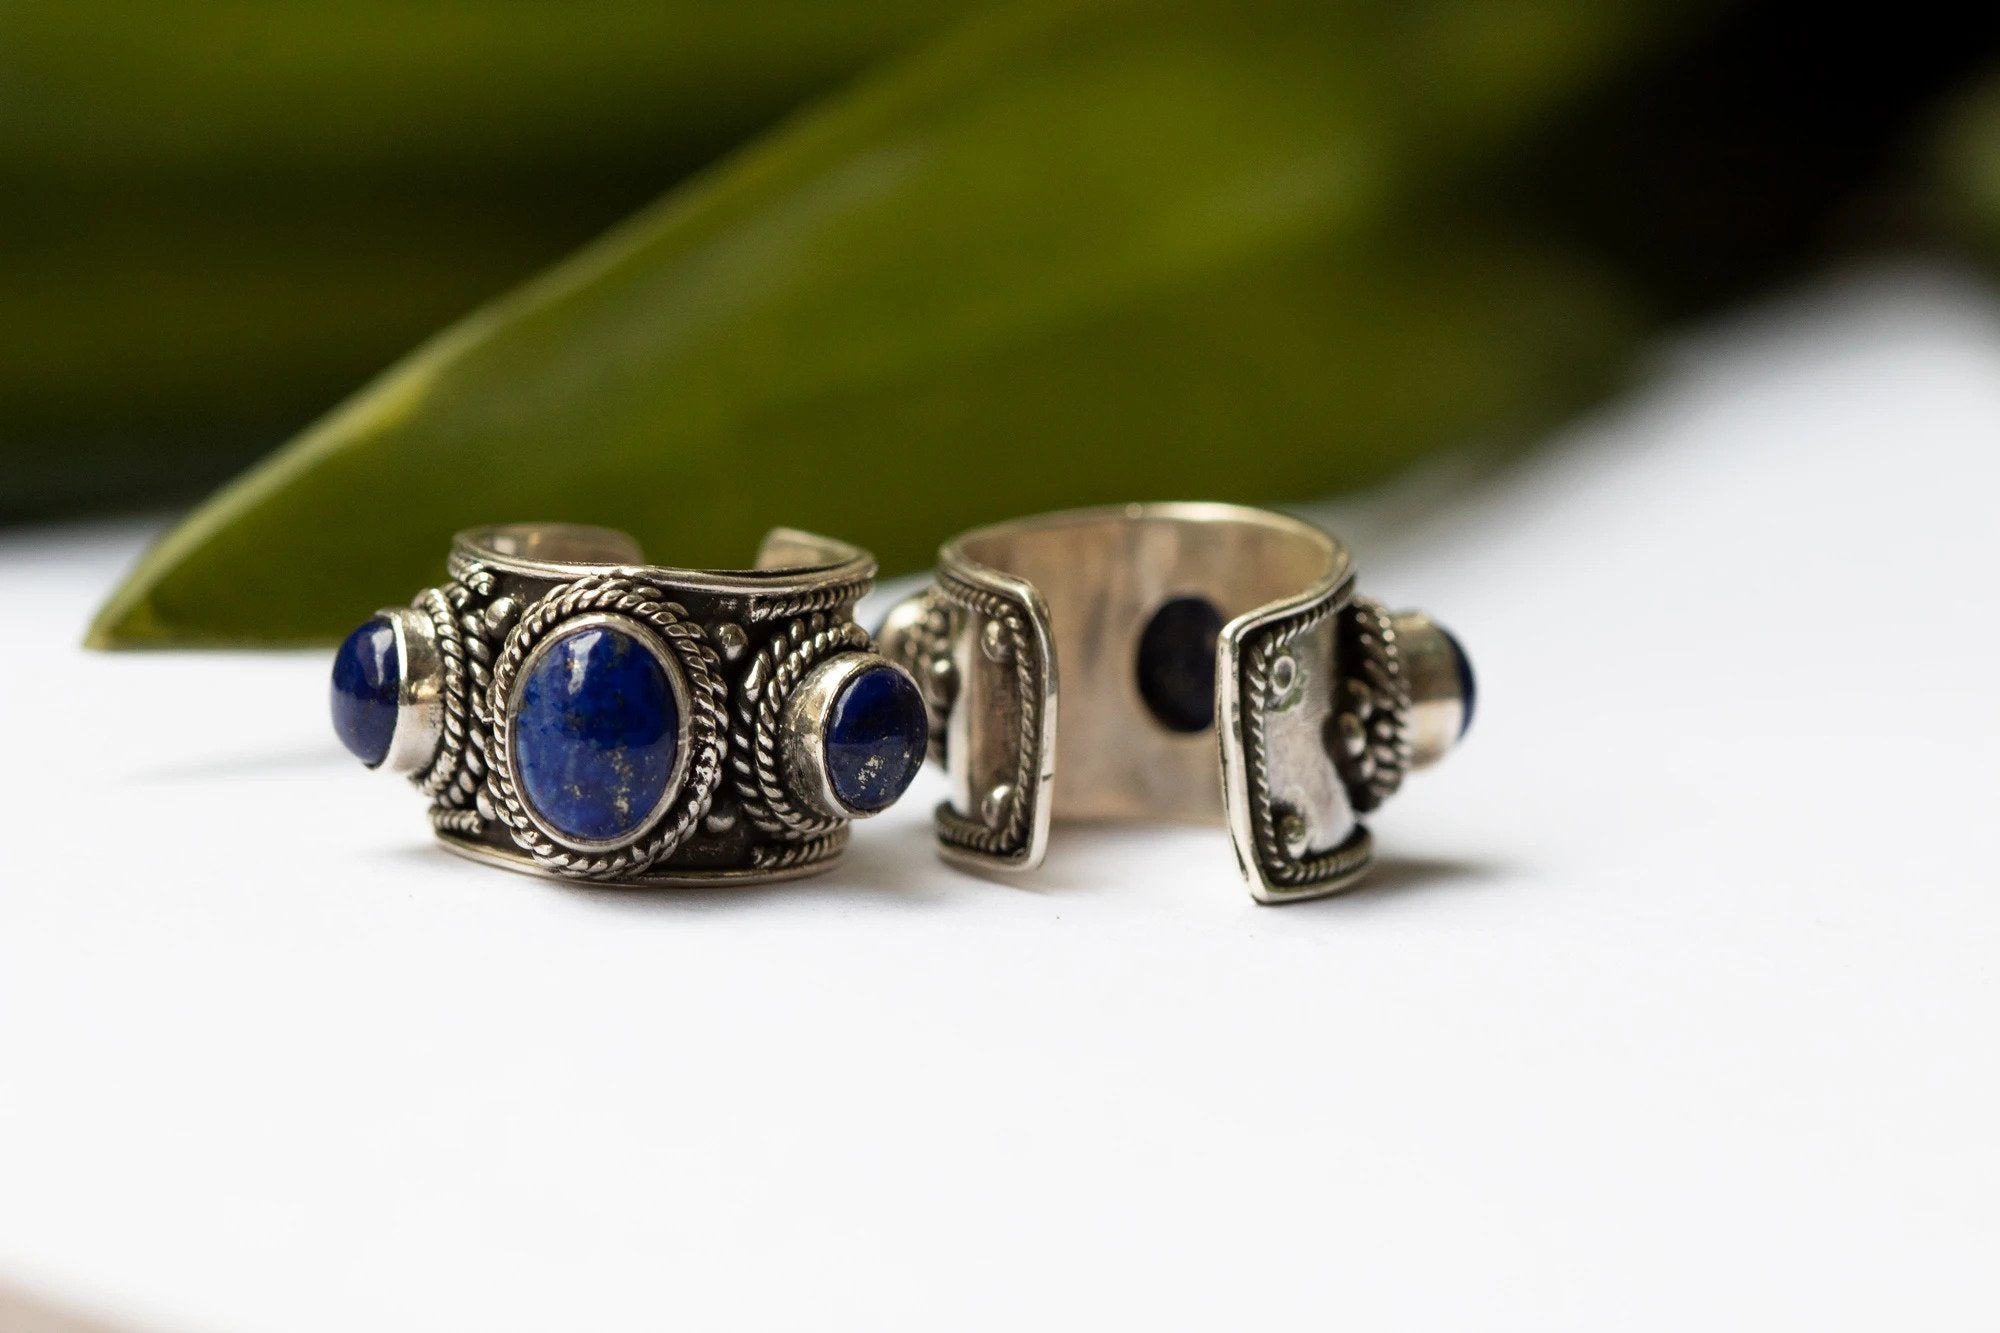 An Ethereal ornament: Lapis Lazuli Jewelry - Its Ambra